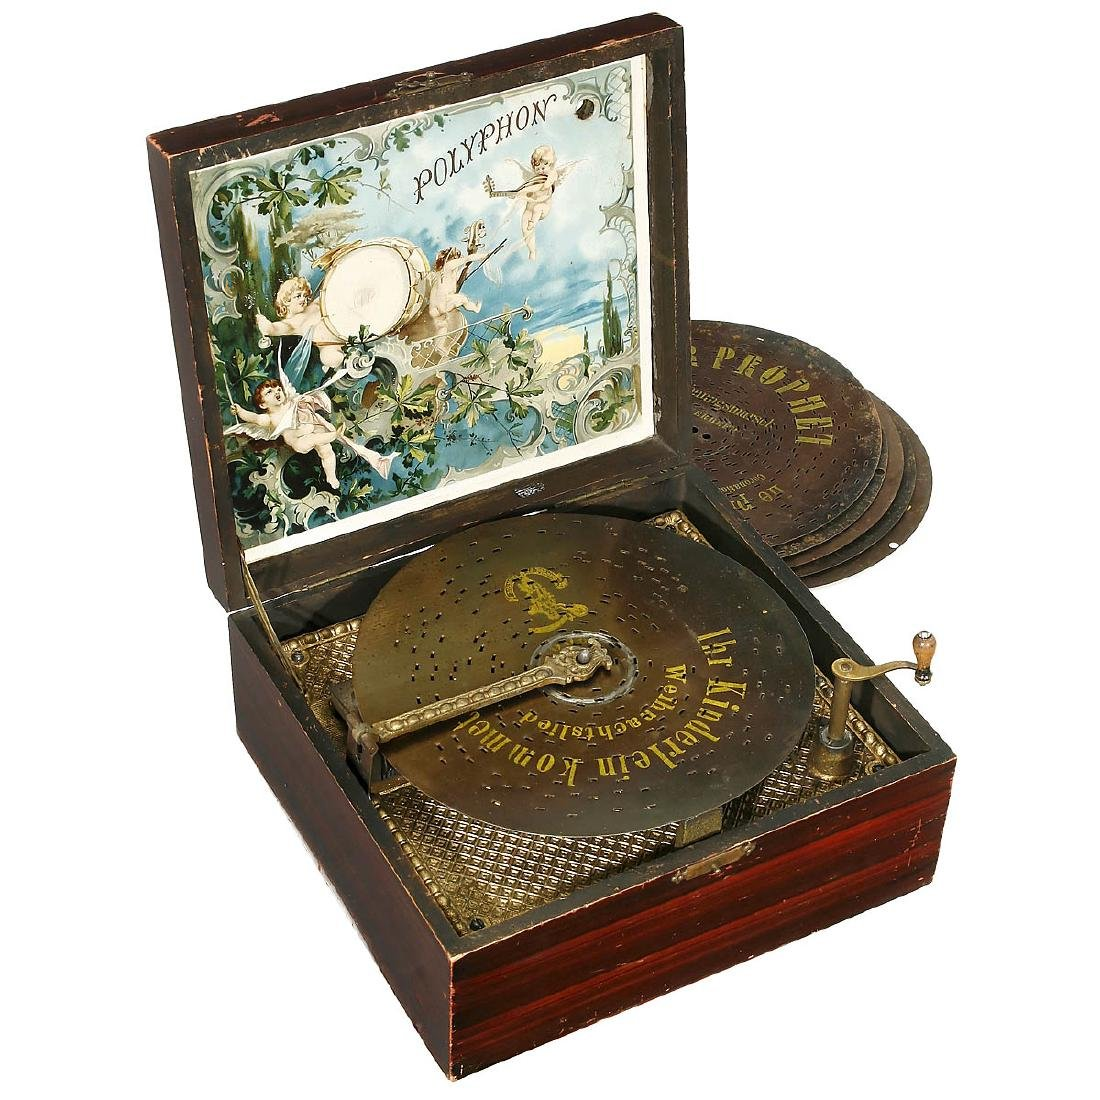 Polyphon Manivelle Disc Musical Box, c. 1900